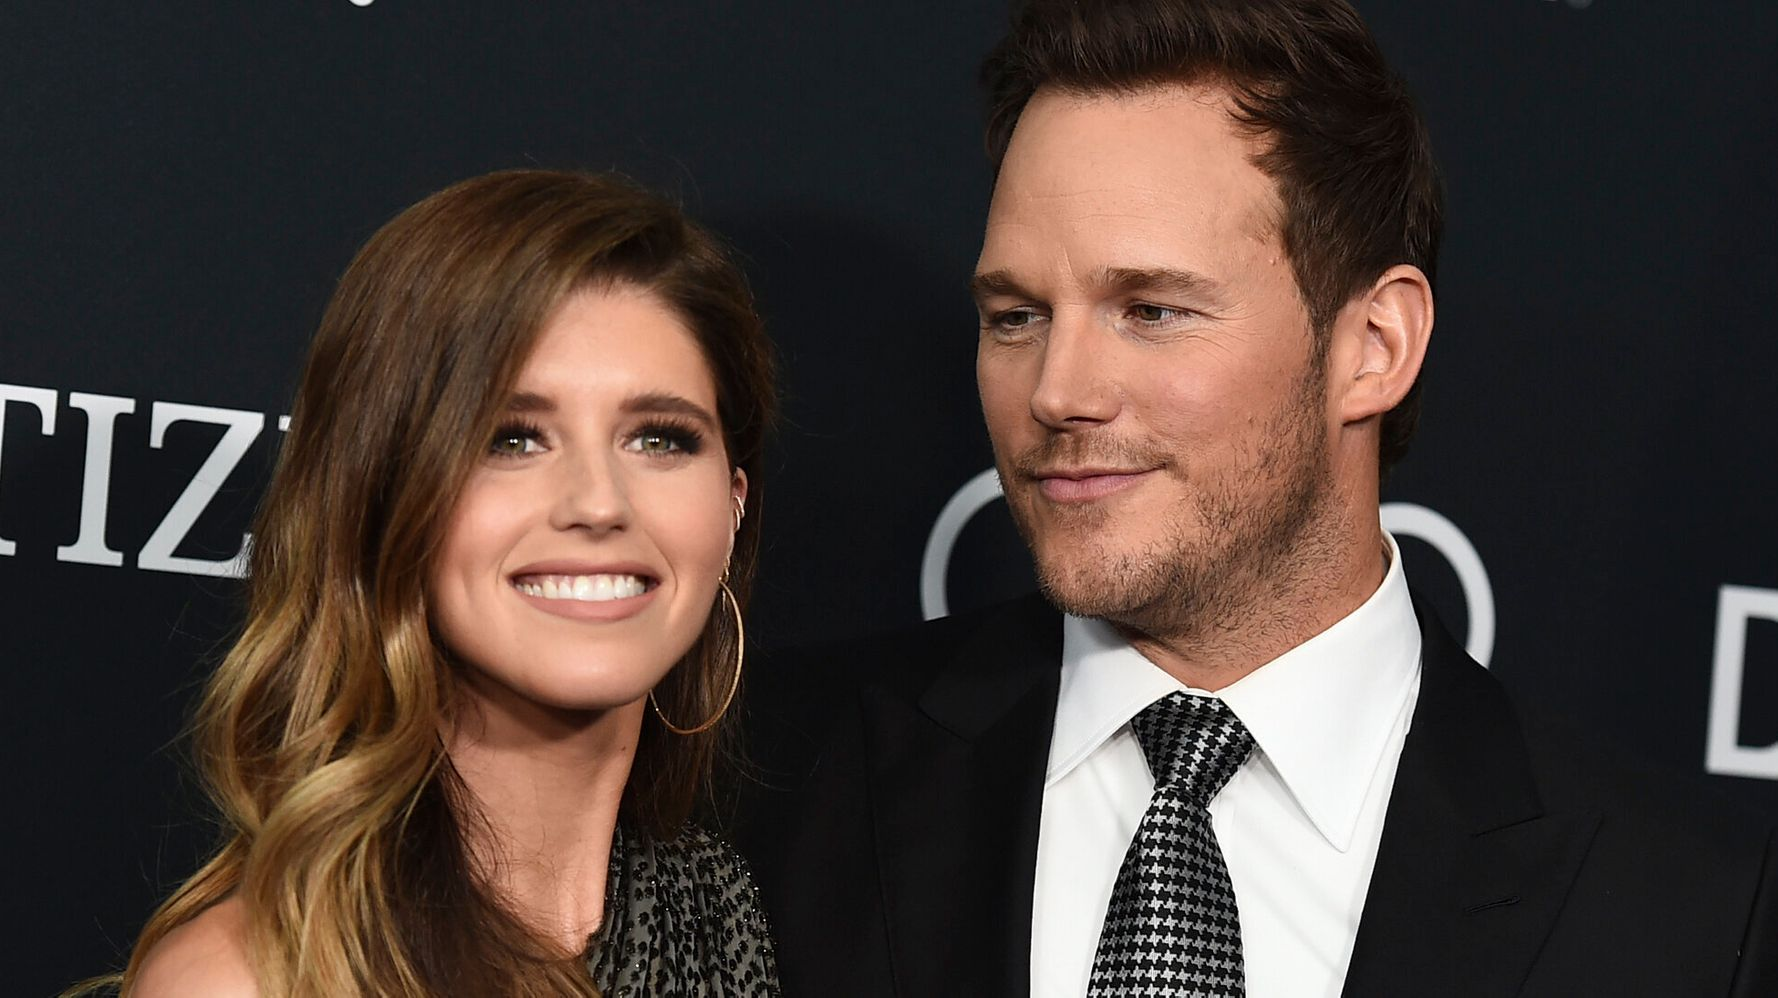 Katherine Schwarzenegger Defends Chris Pratt After Brutal 'Hollywood Chris' Ranking